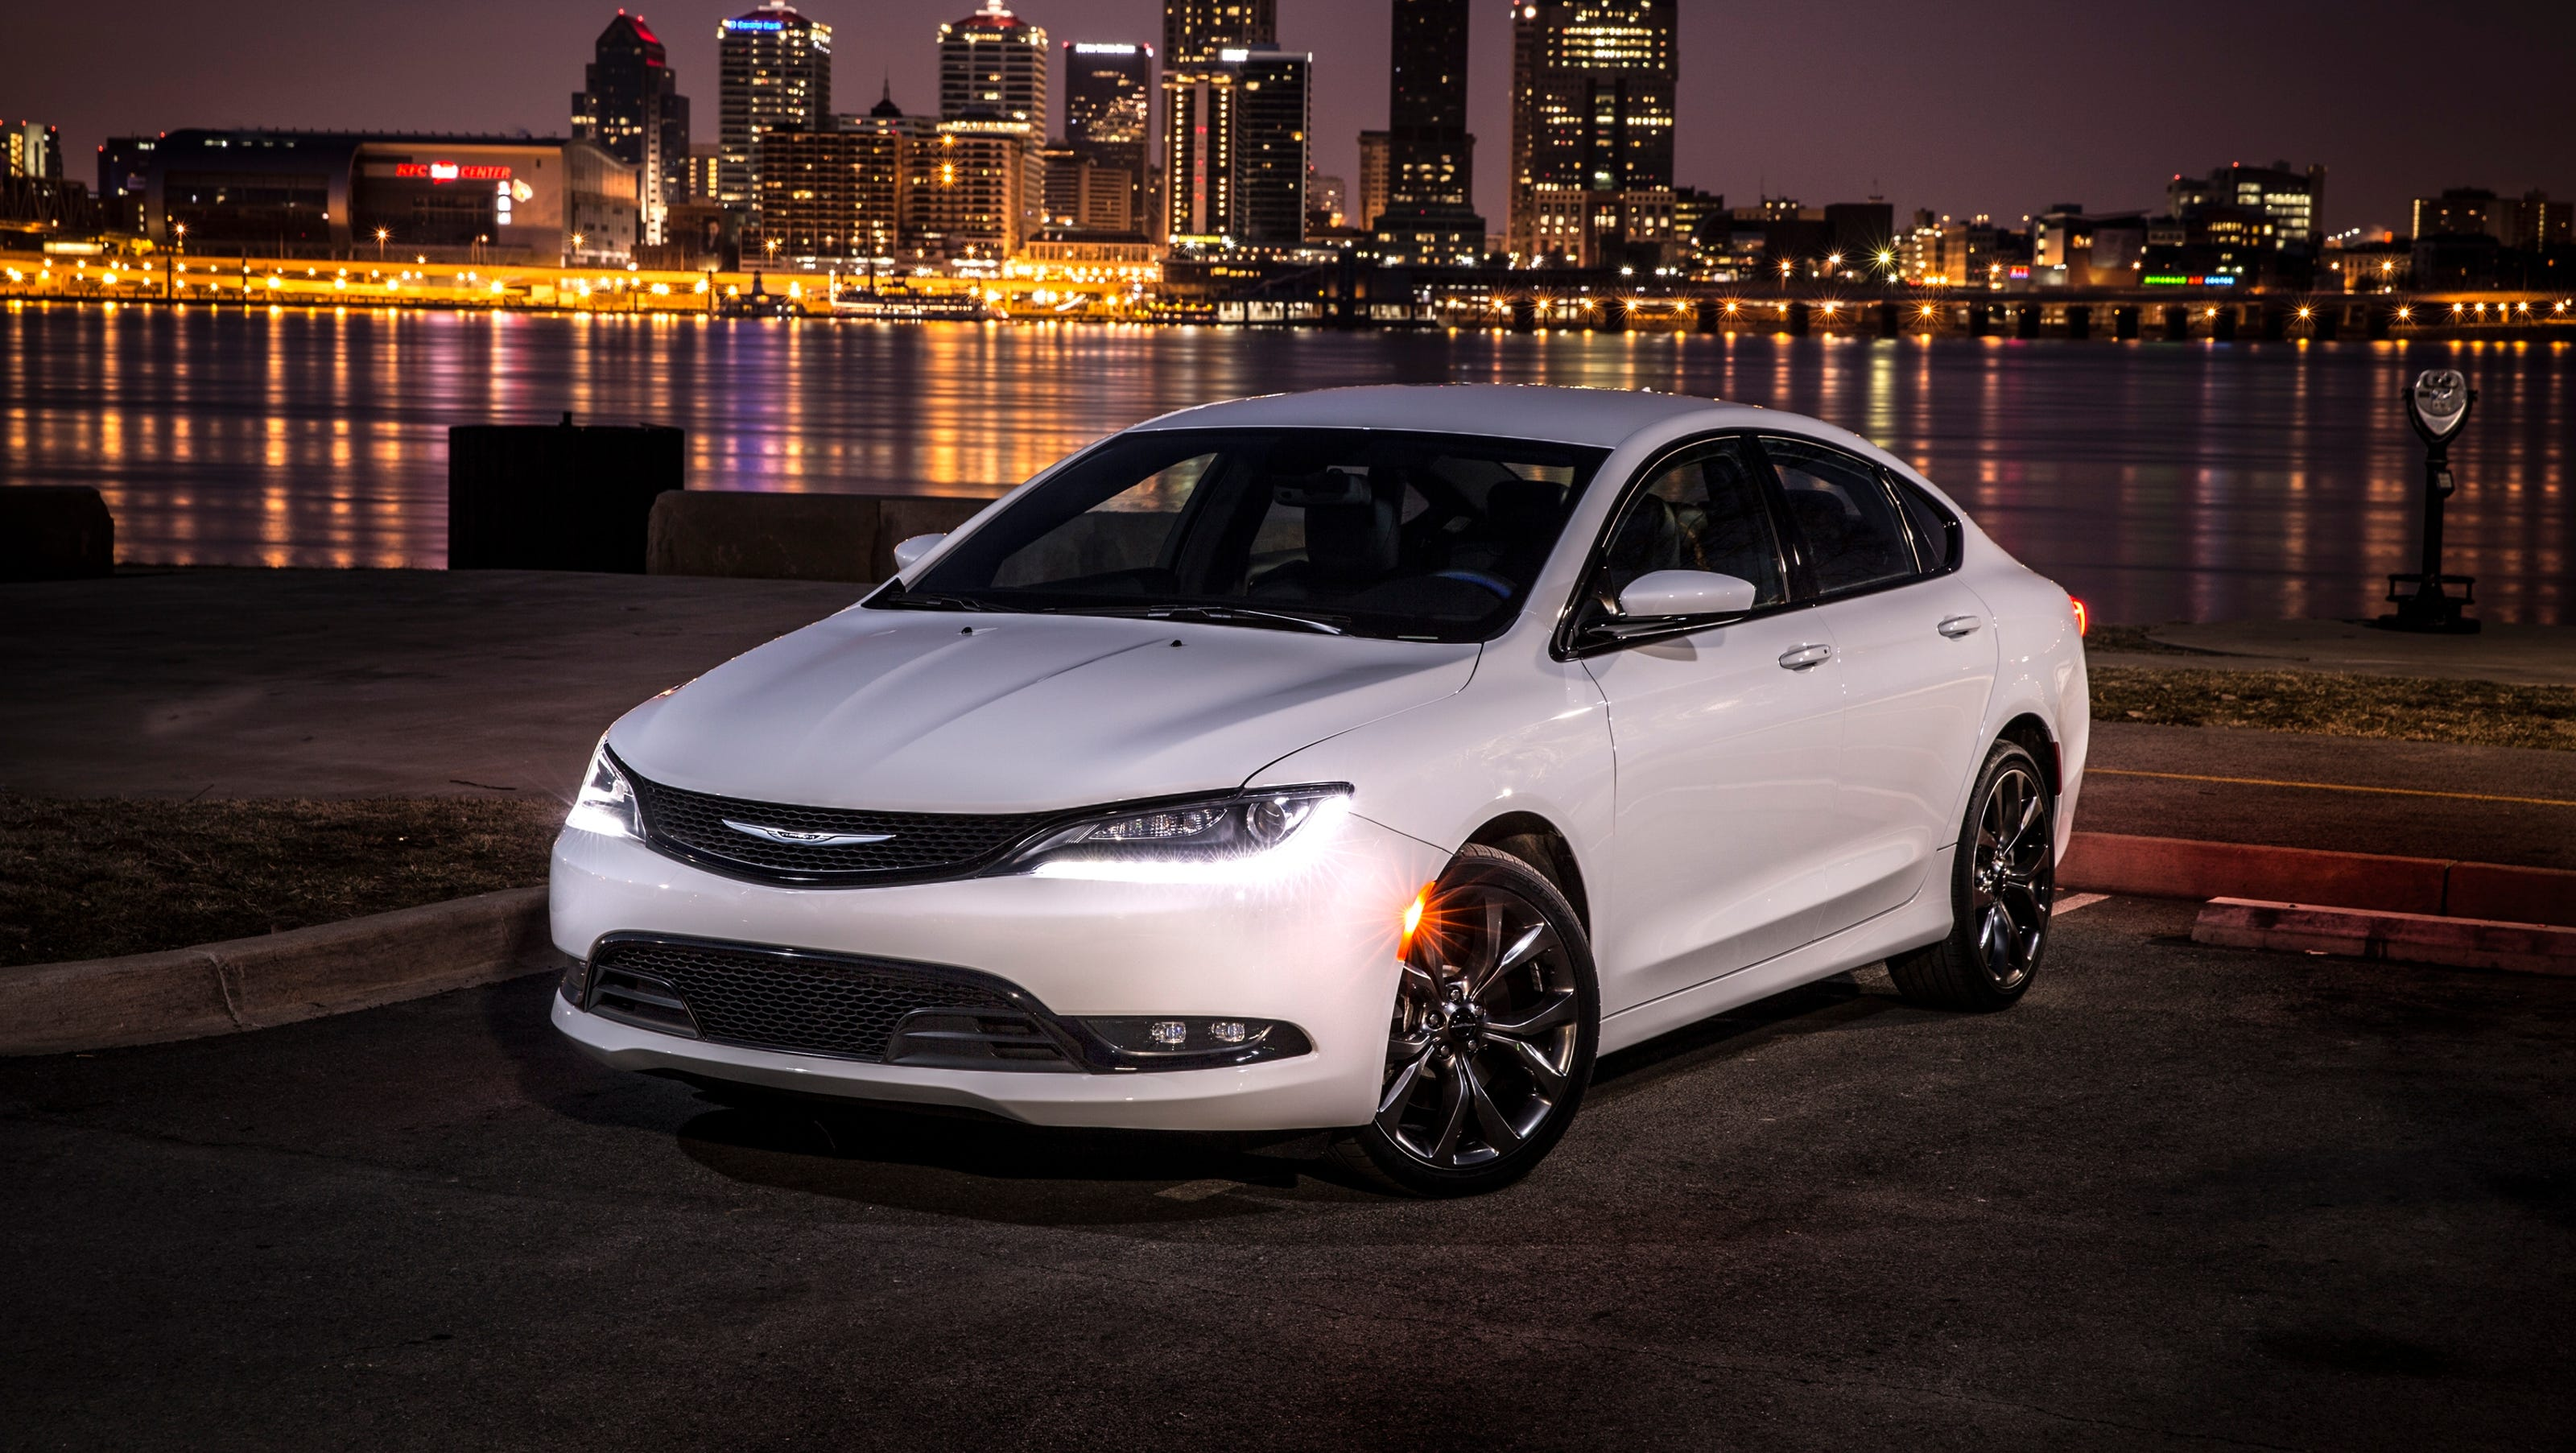 2015 Chrysler 200 remake sweetly disappointing